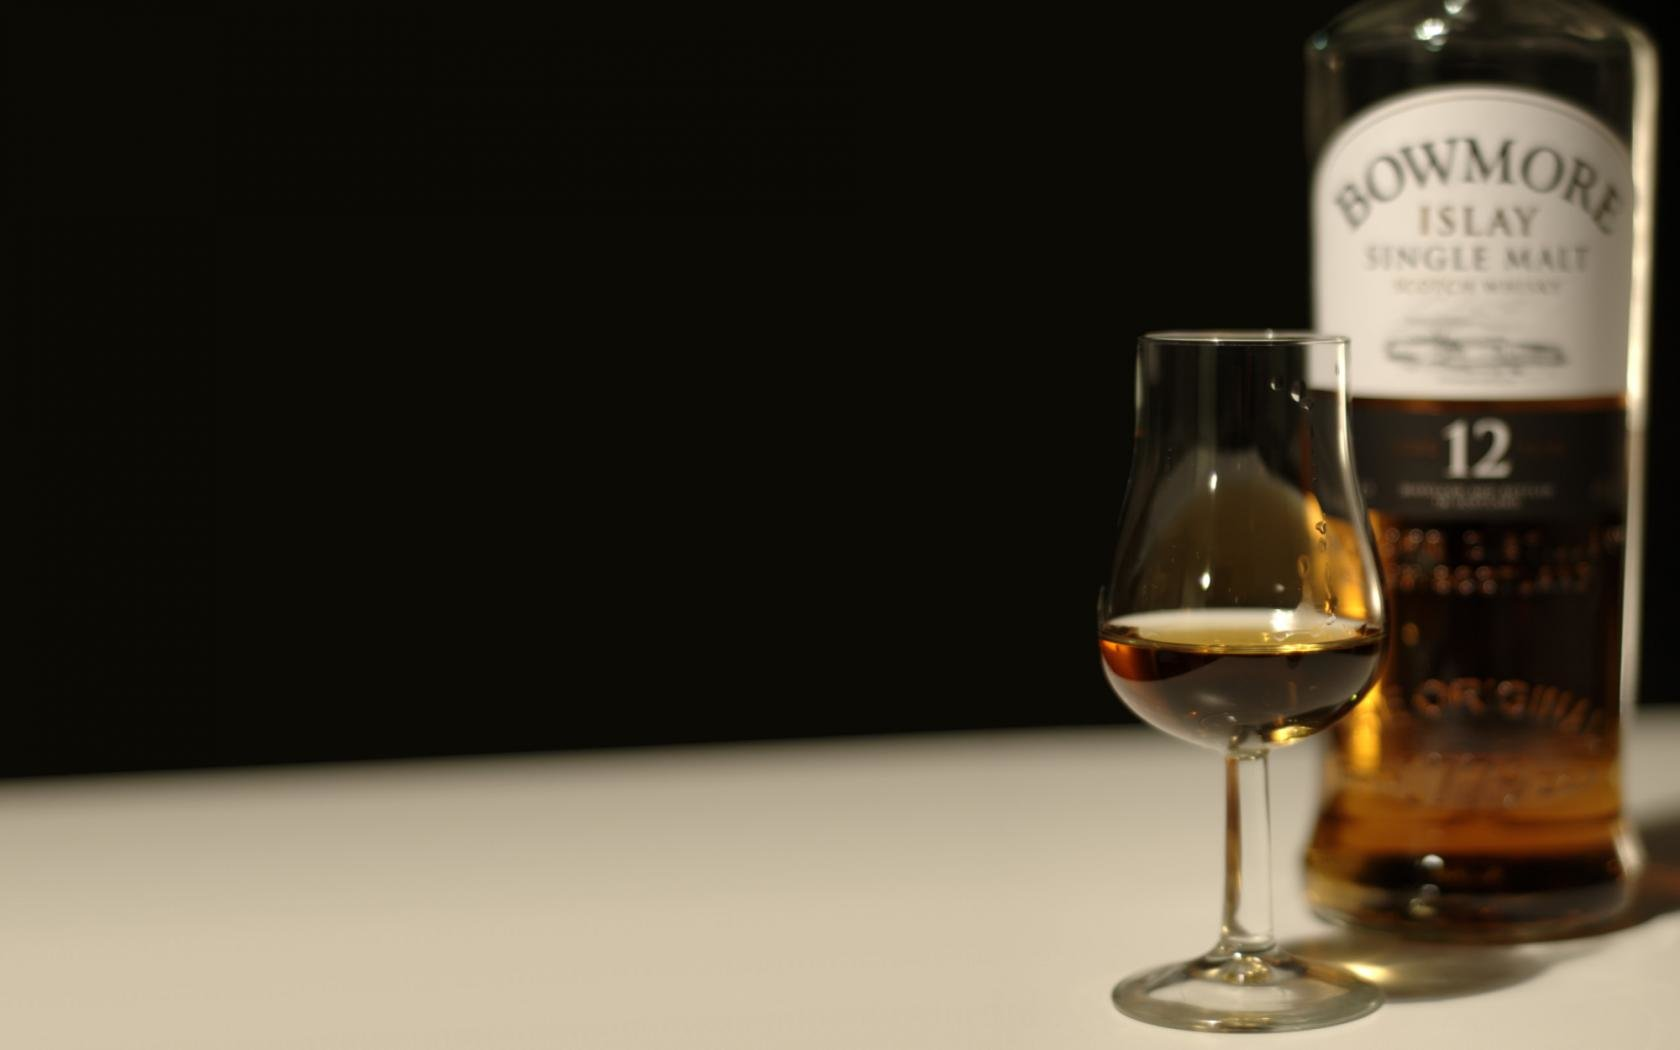 Free Whisky high quality wallpaper ID:299997 for hd 1680x1050 desktop